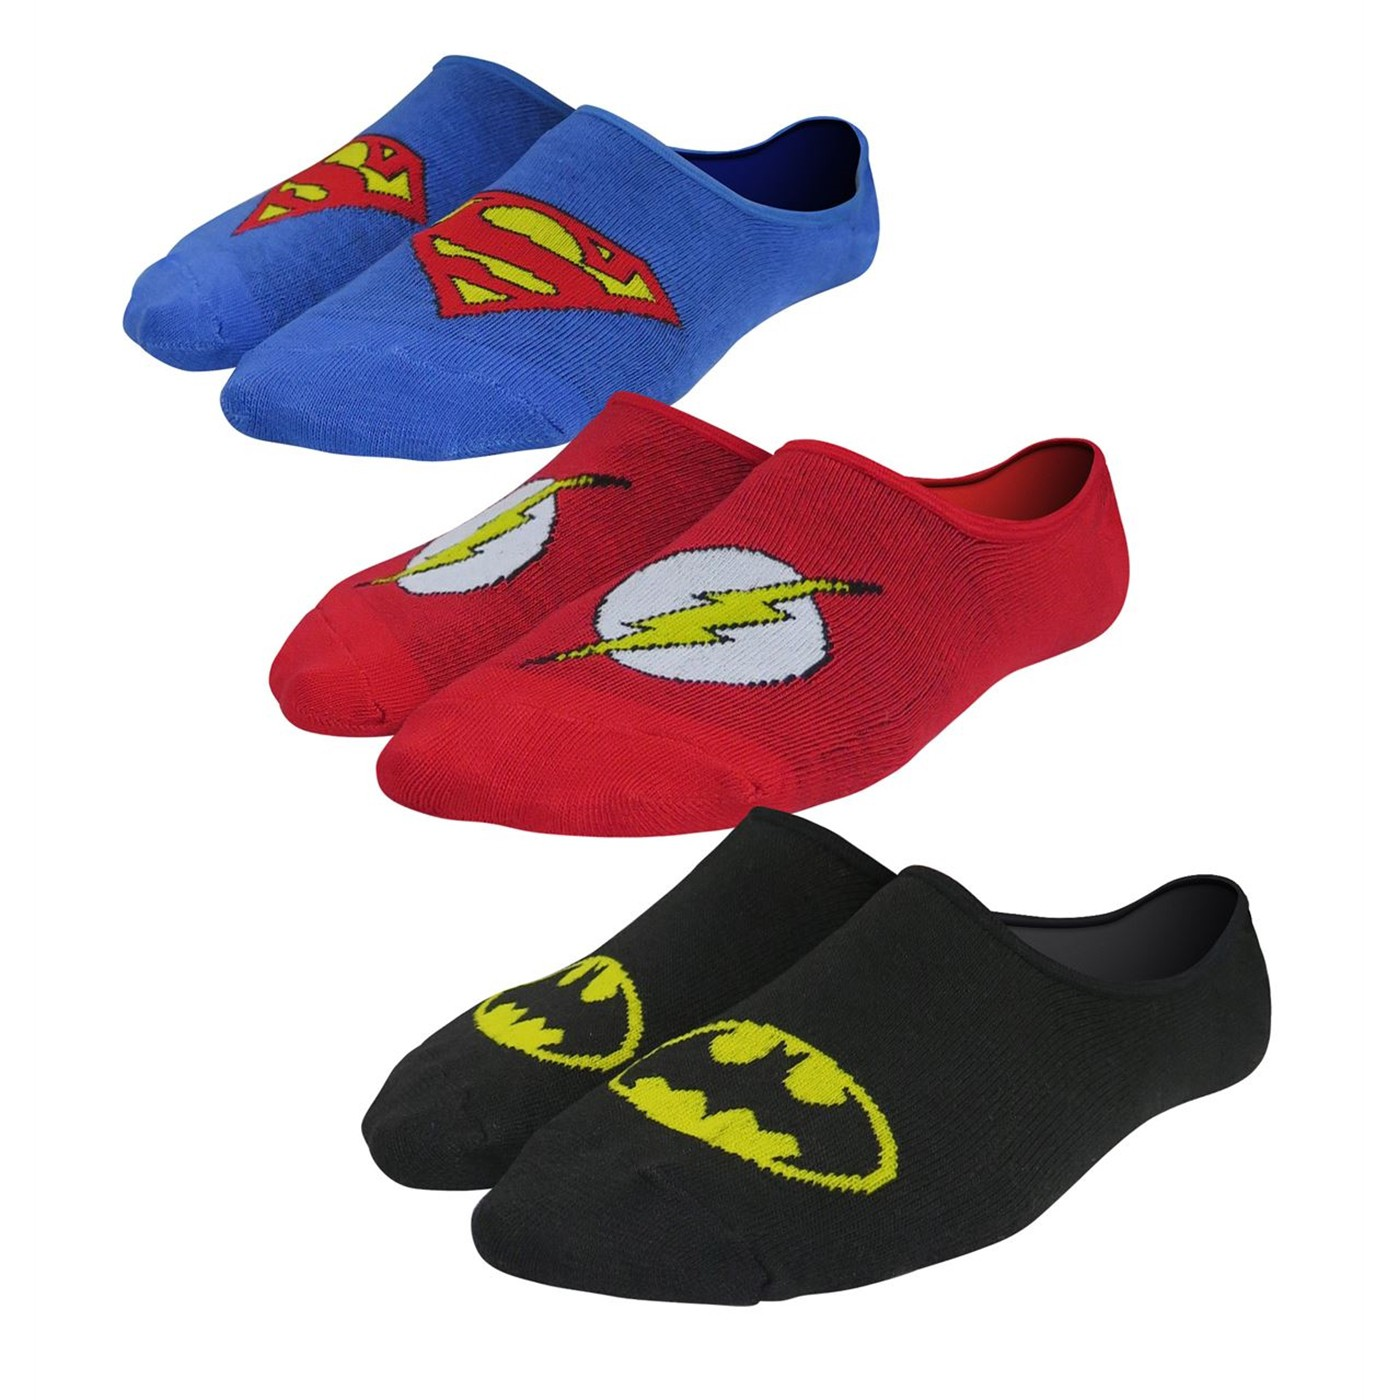 Justice League Symbols Shorty Socks 3-Pack